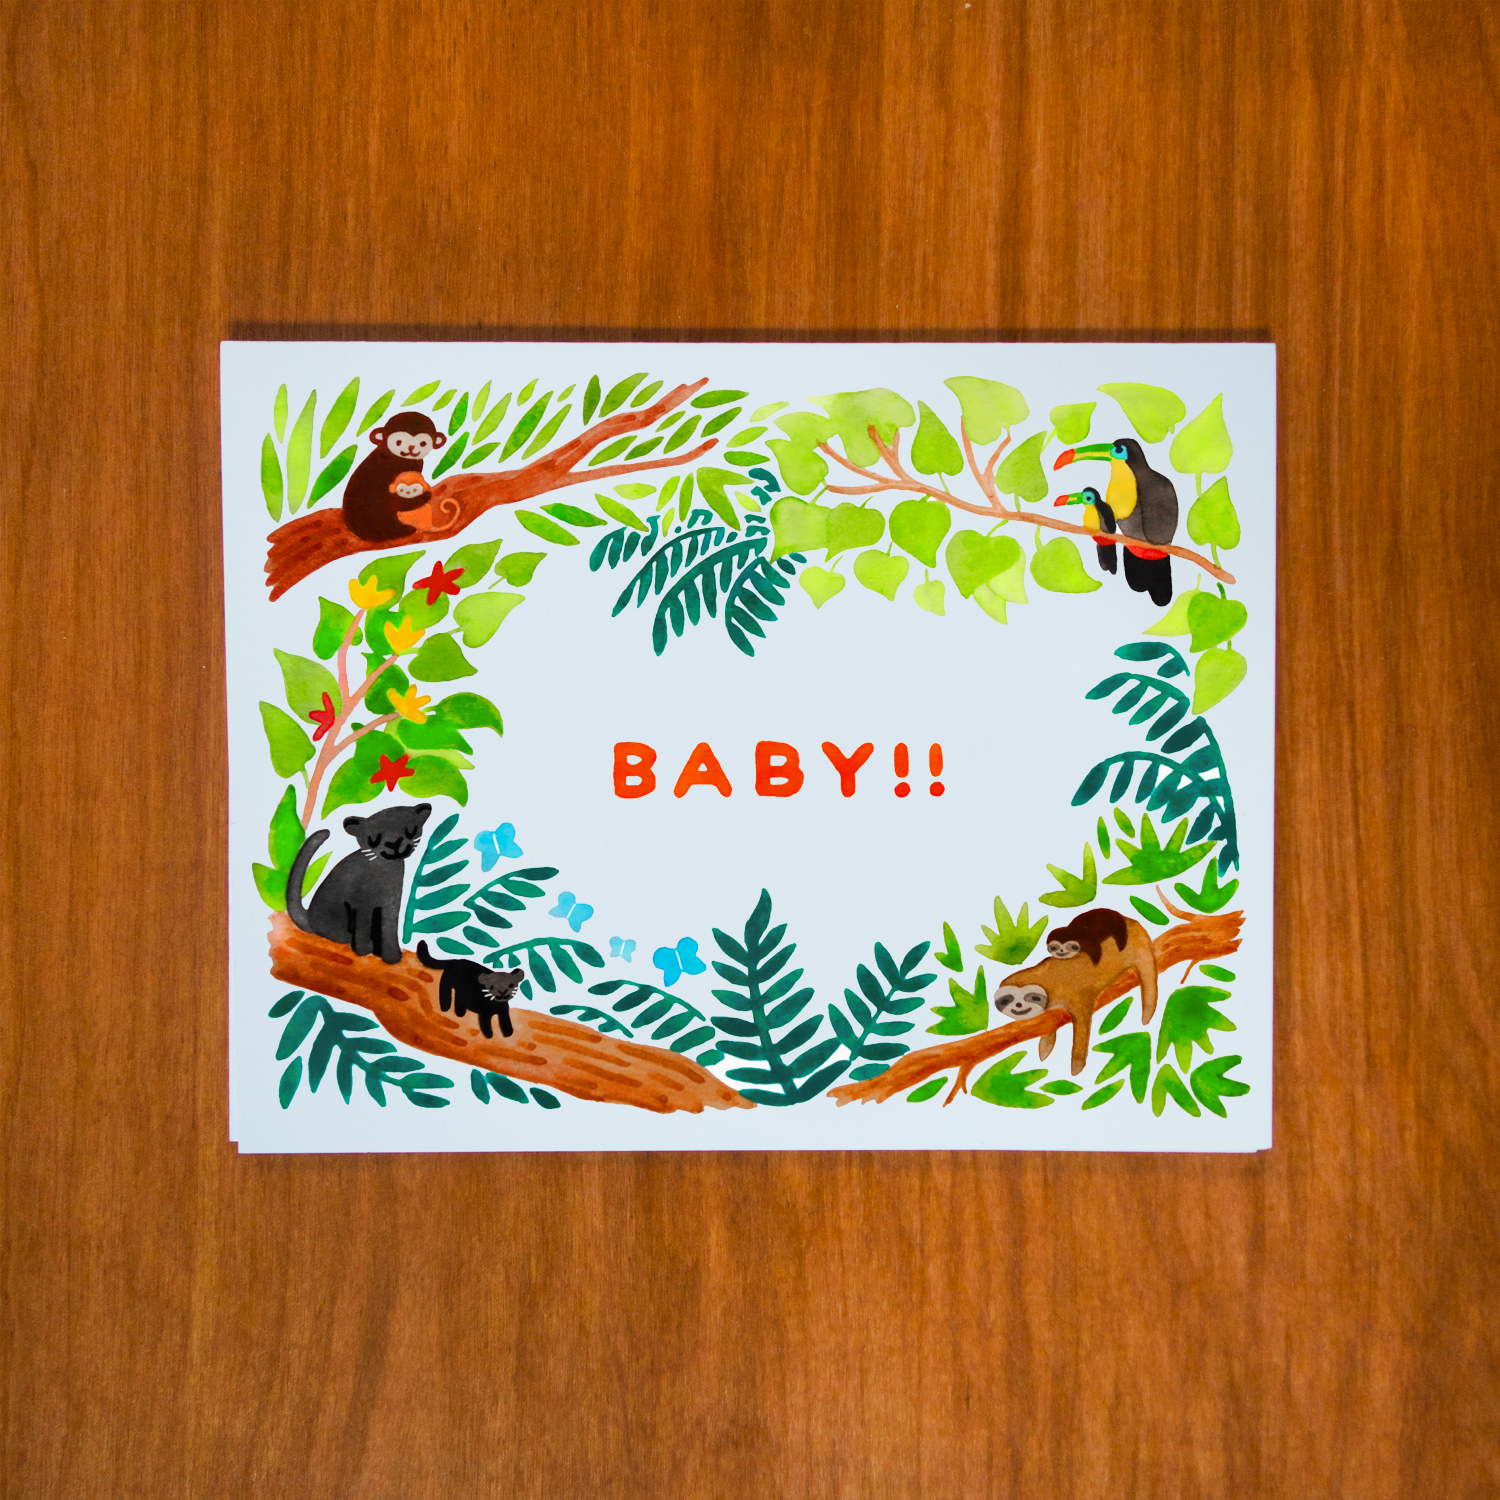 baby-greeting-card-on-wood-medium.jpg